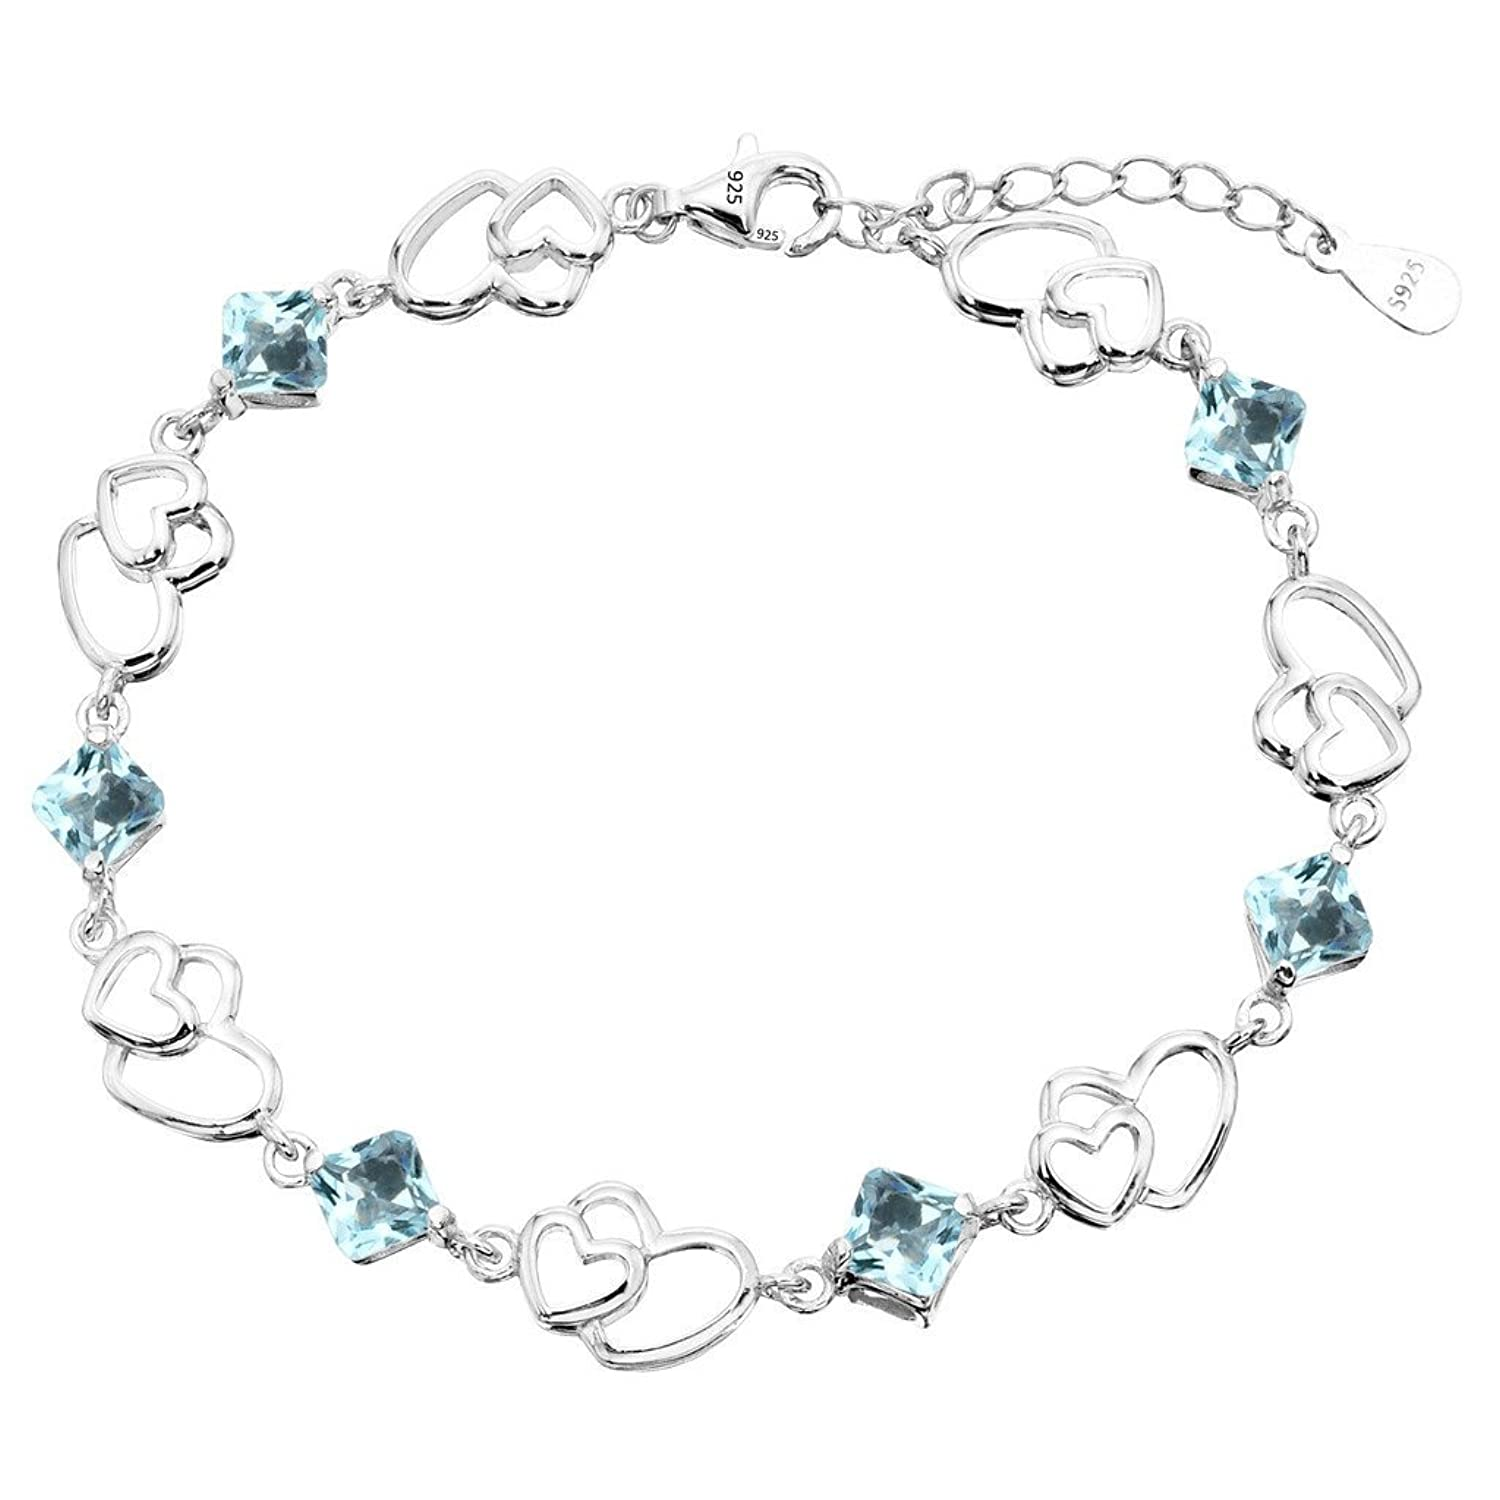 Best Birthday Gift Leslies Sterling Silver CZ Polished Bracelet